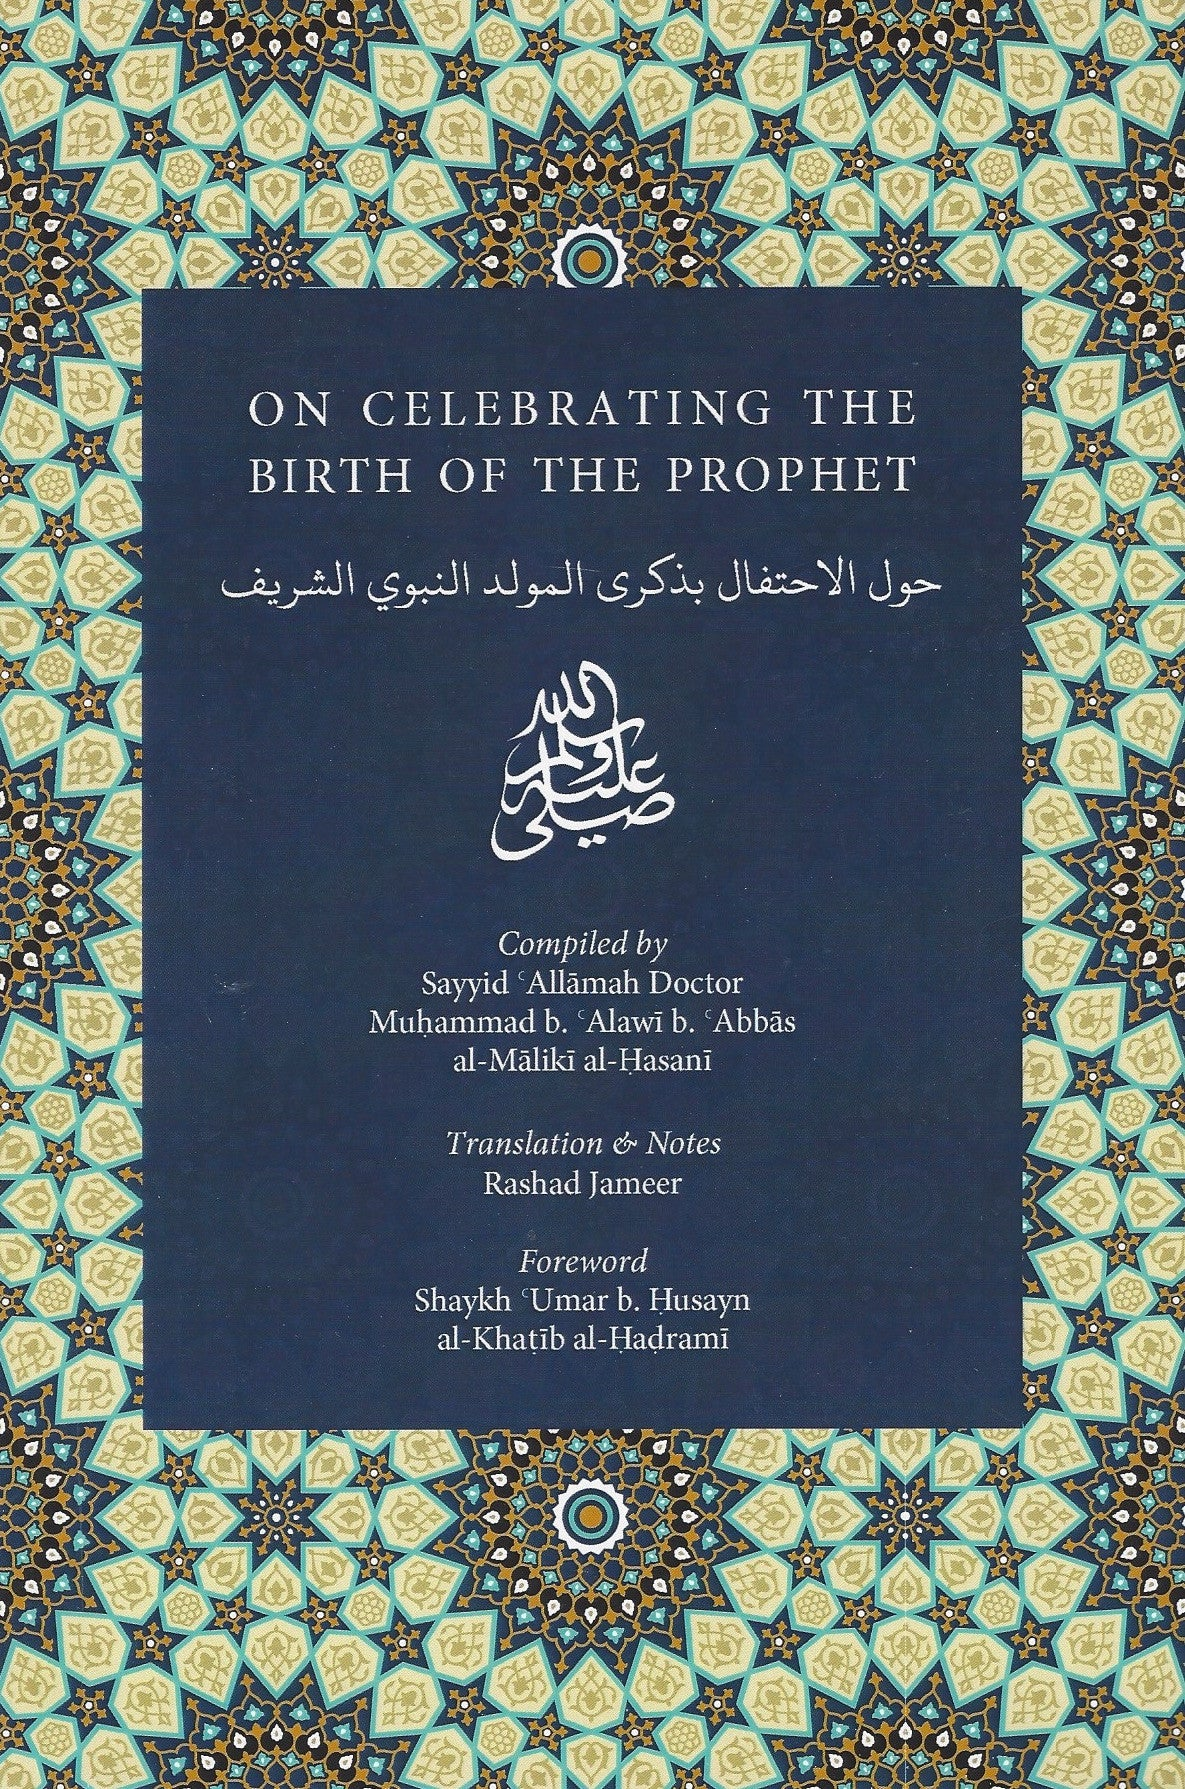 On Celebrating the Birth of the Prophet , Book - Daybreak Press Global Bookshop, Daybreak Press Global Bookshop